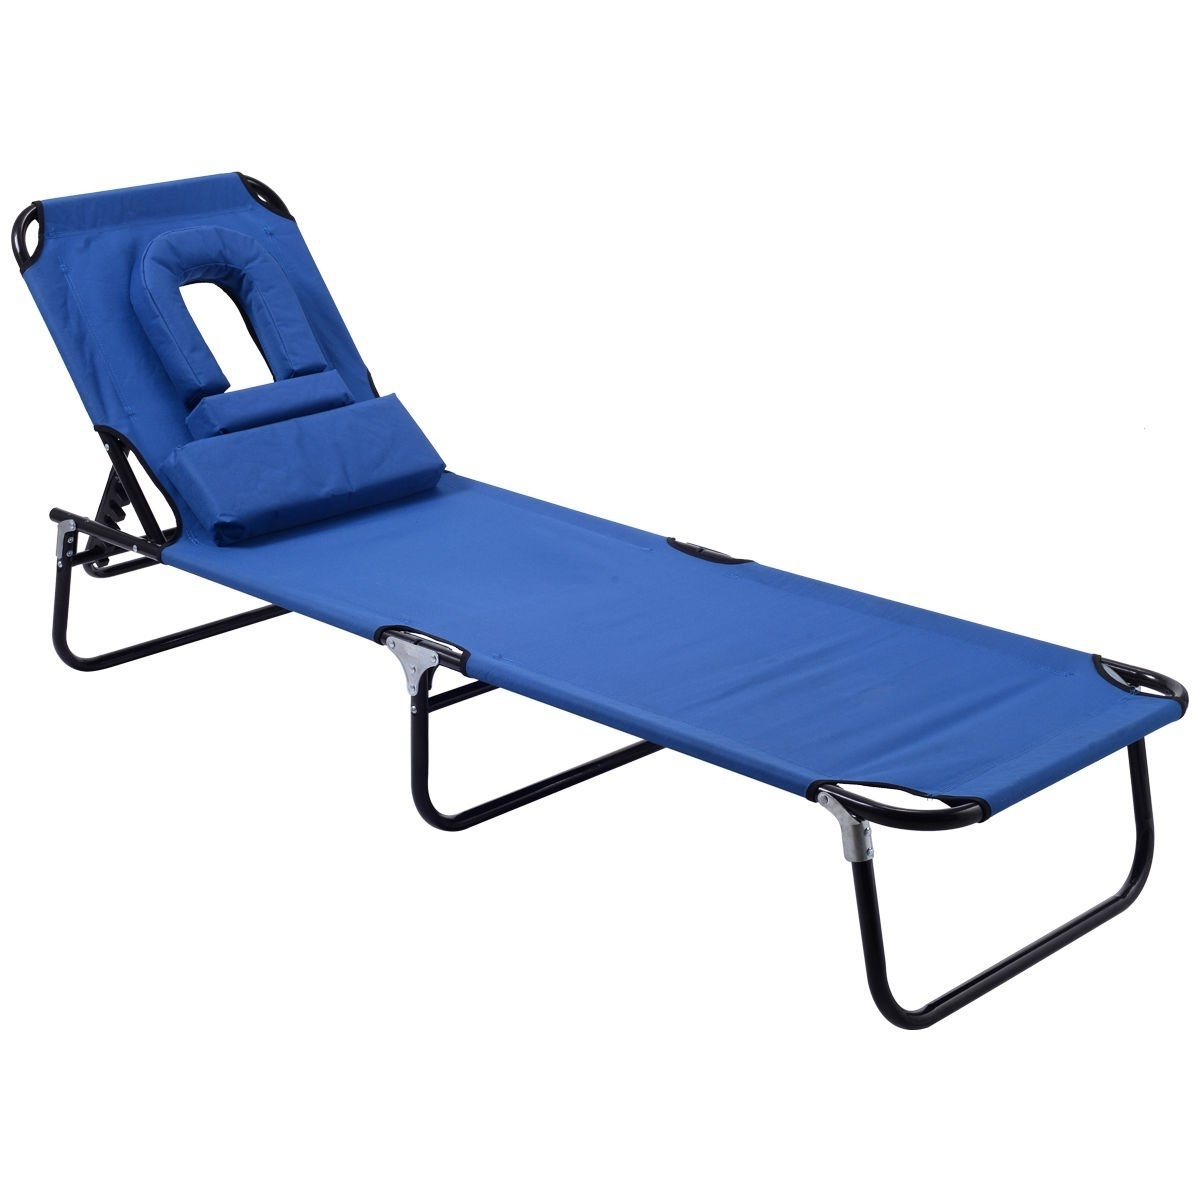 Ostrich Lounge Chaises For 2017 Amazon: Goplus Folding Chaise Lounge Chair Bed Outdoor Patio (View 8 of 15)